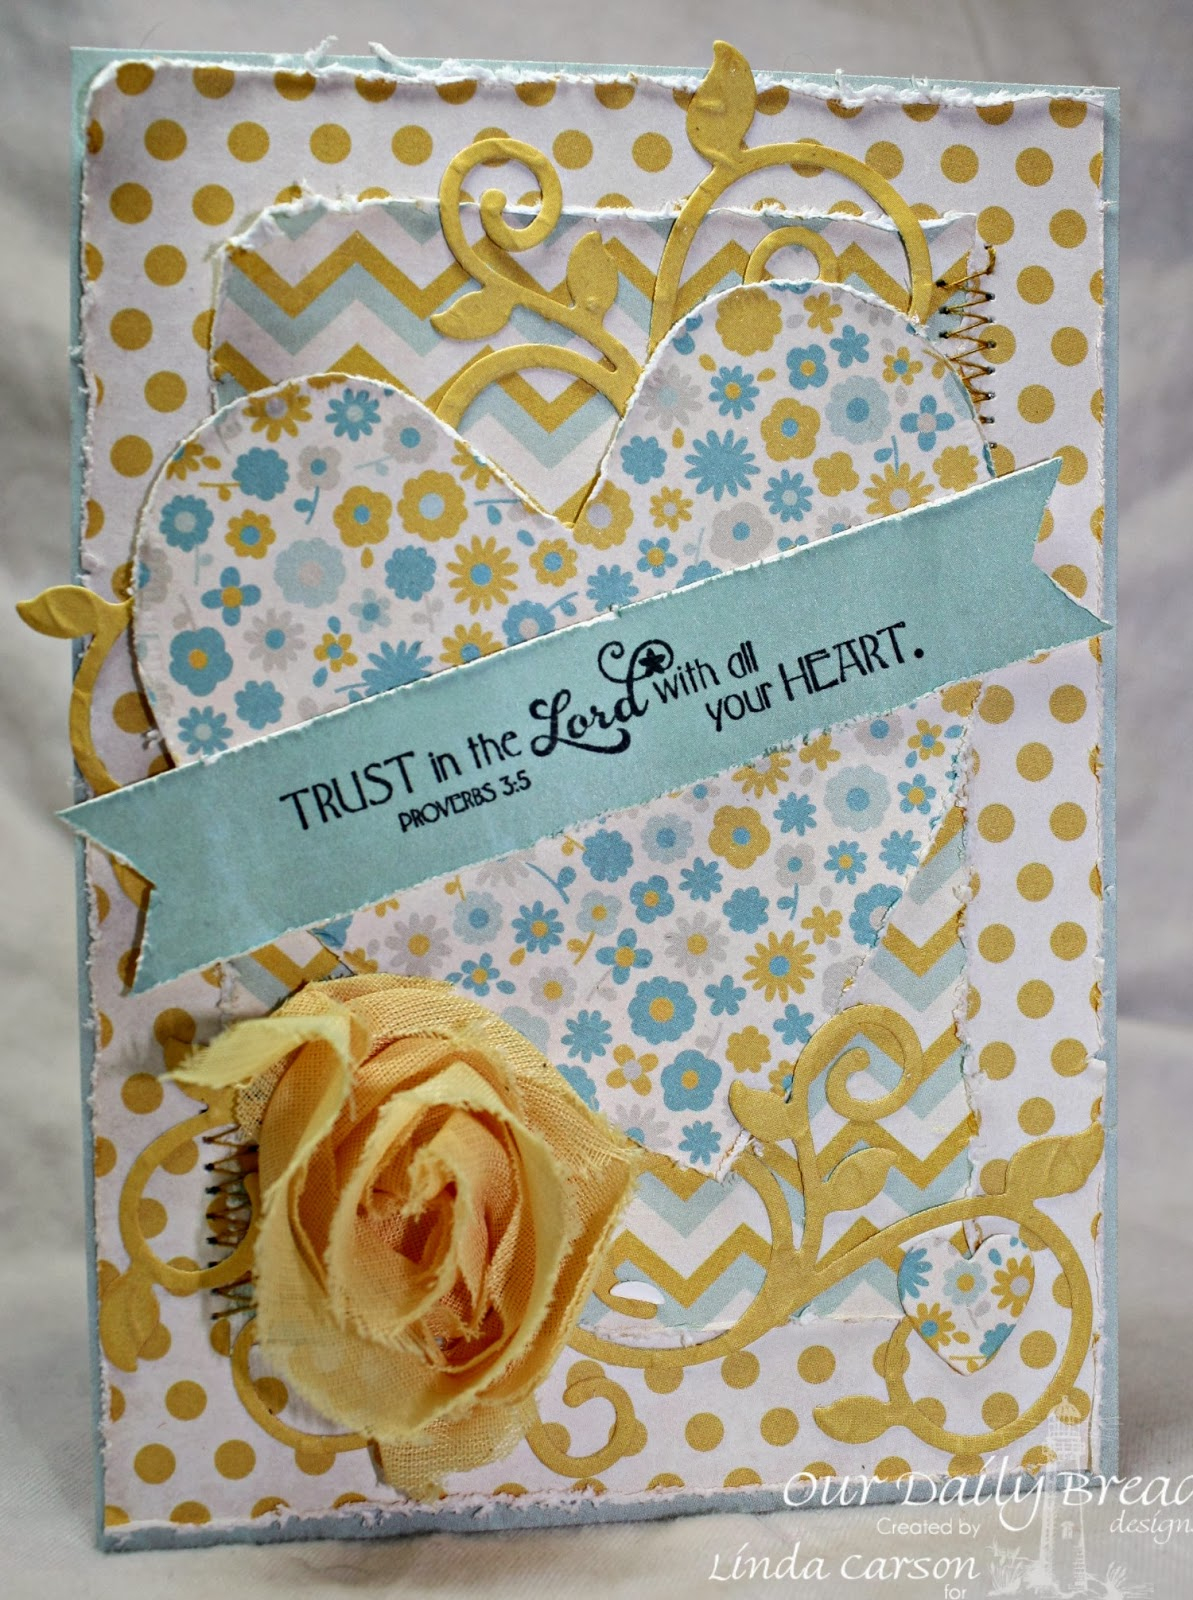 Our Daily Bread Designs, Clean Heart, Ornate Hearts dies, Fancy Foliage die, designer Linda Carson